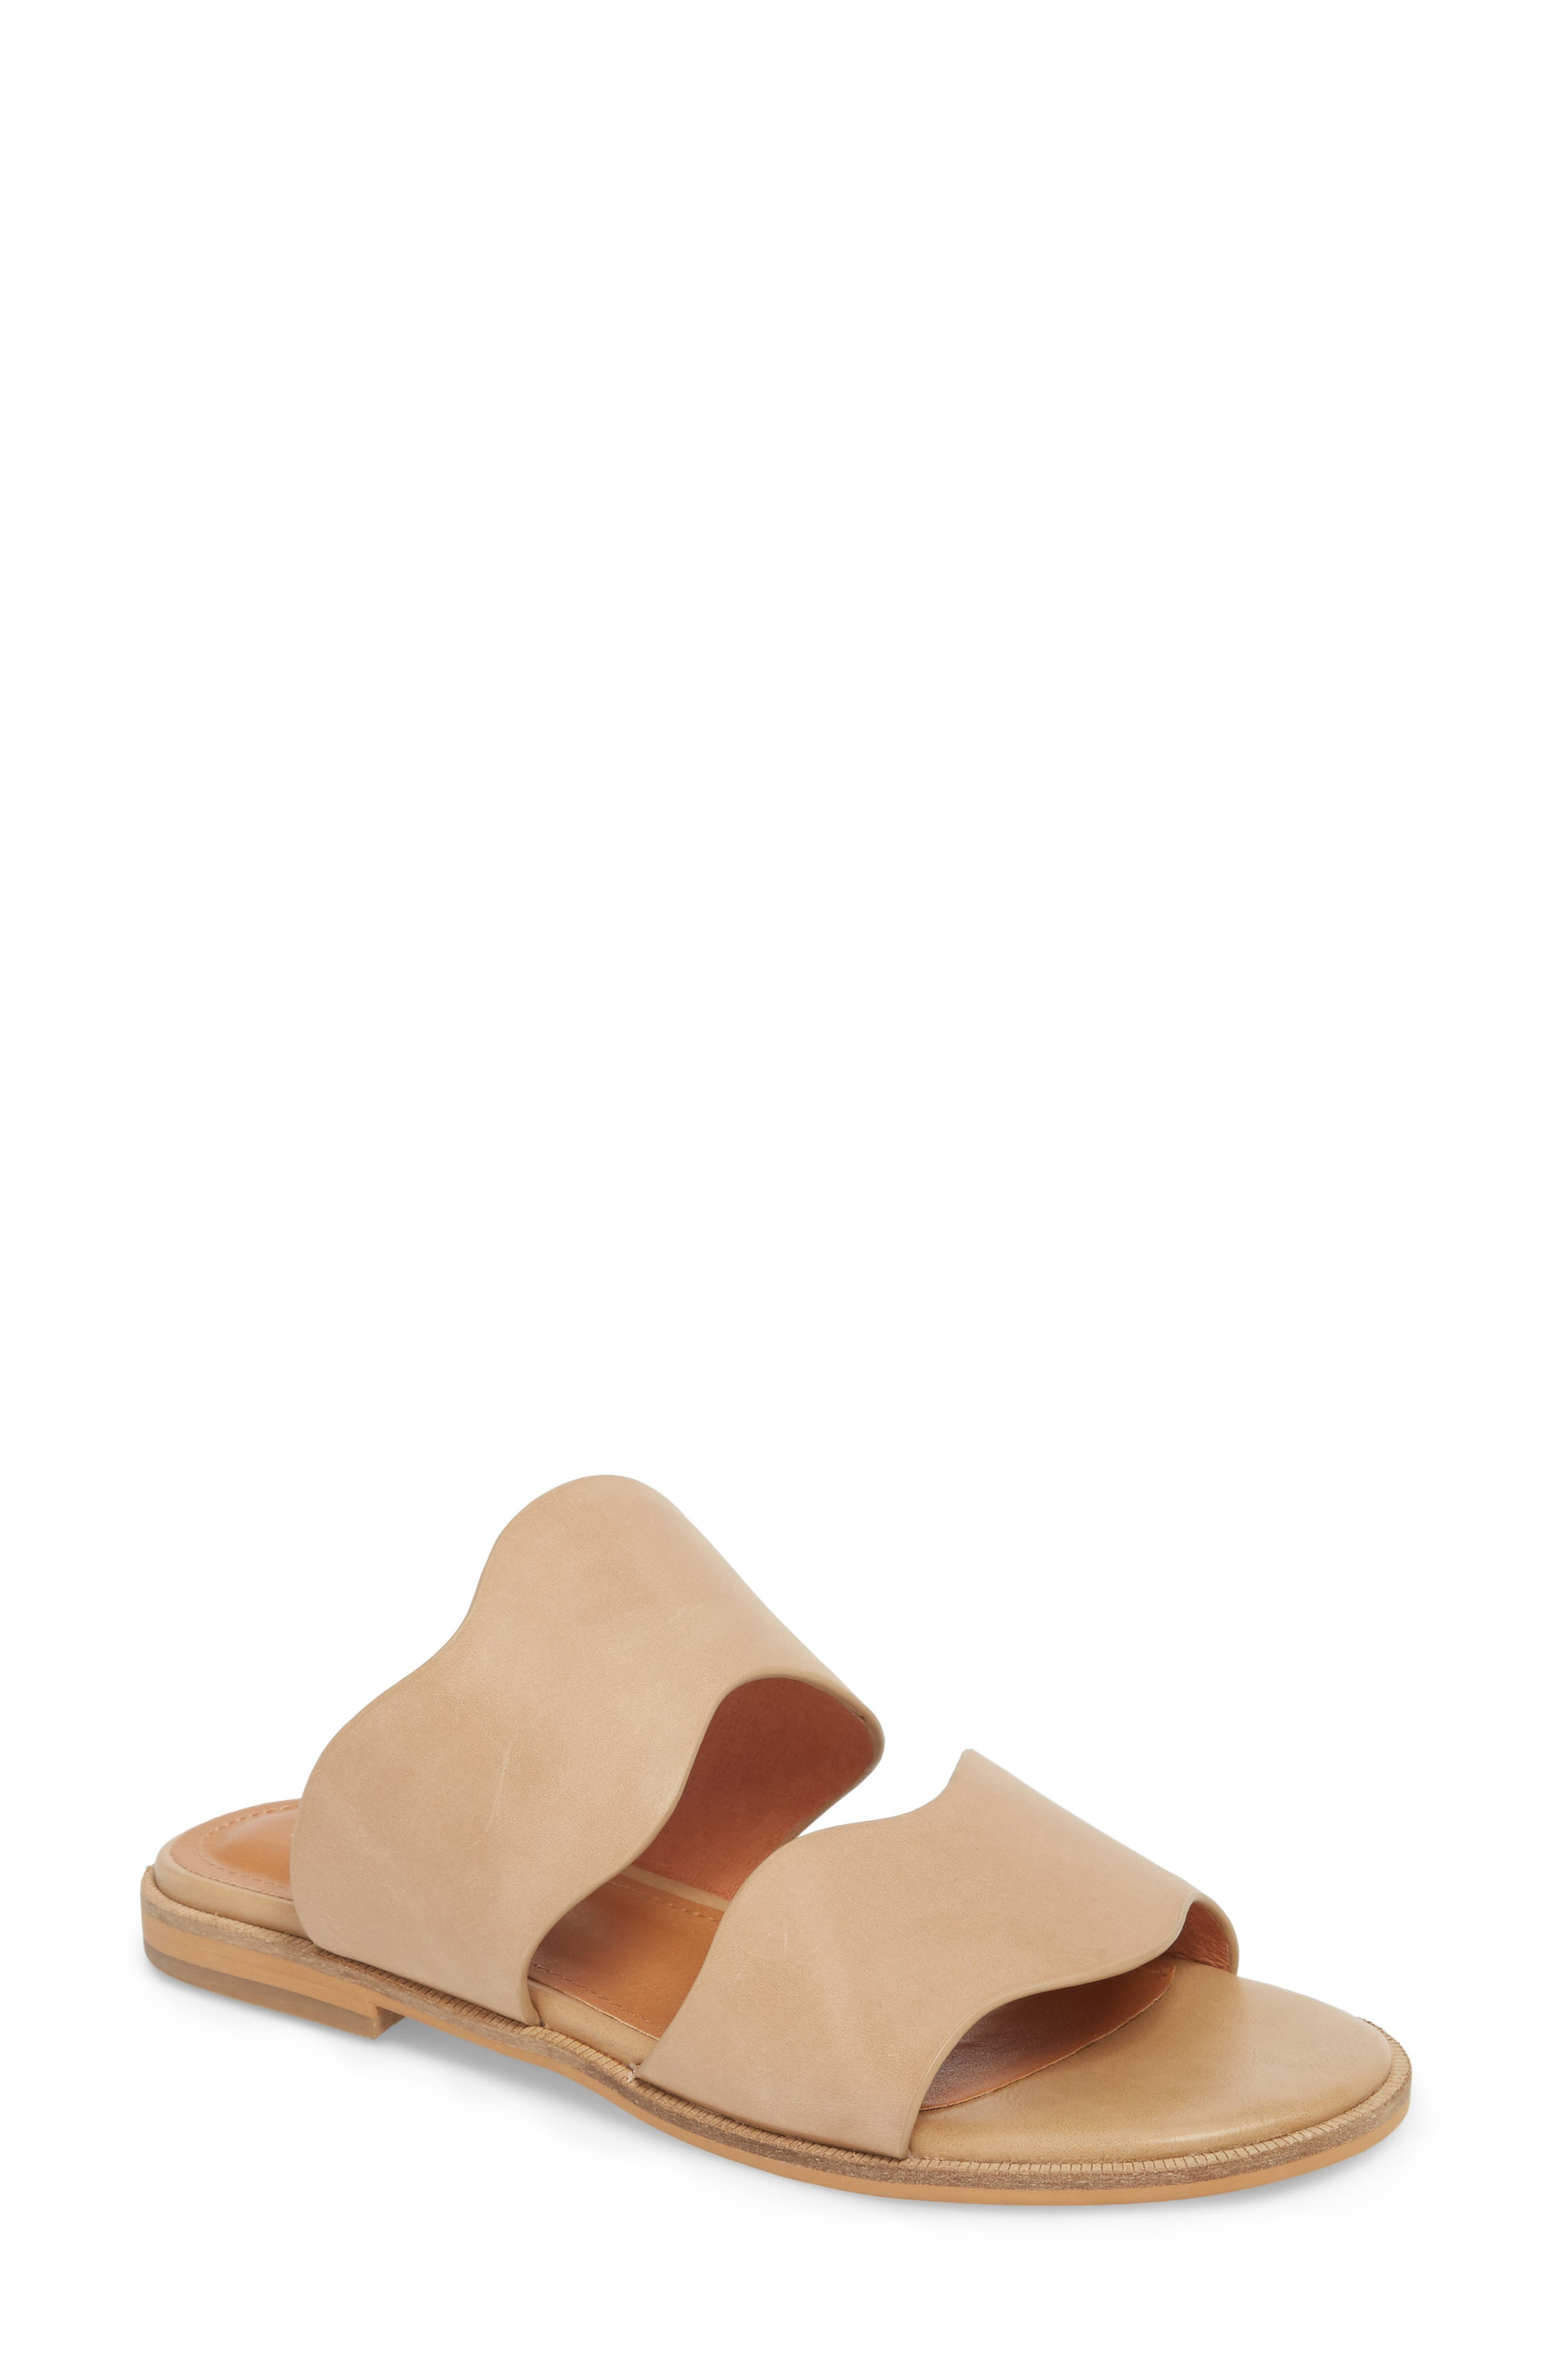 Thermos Scalloped Slide Sandal,                         Main,                         color, 250